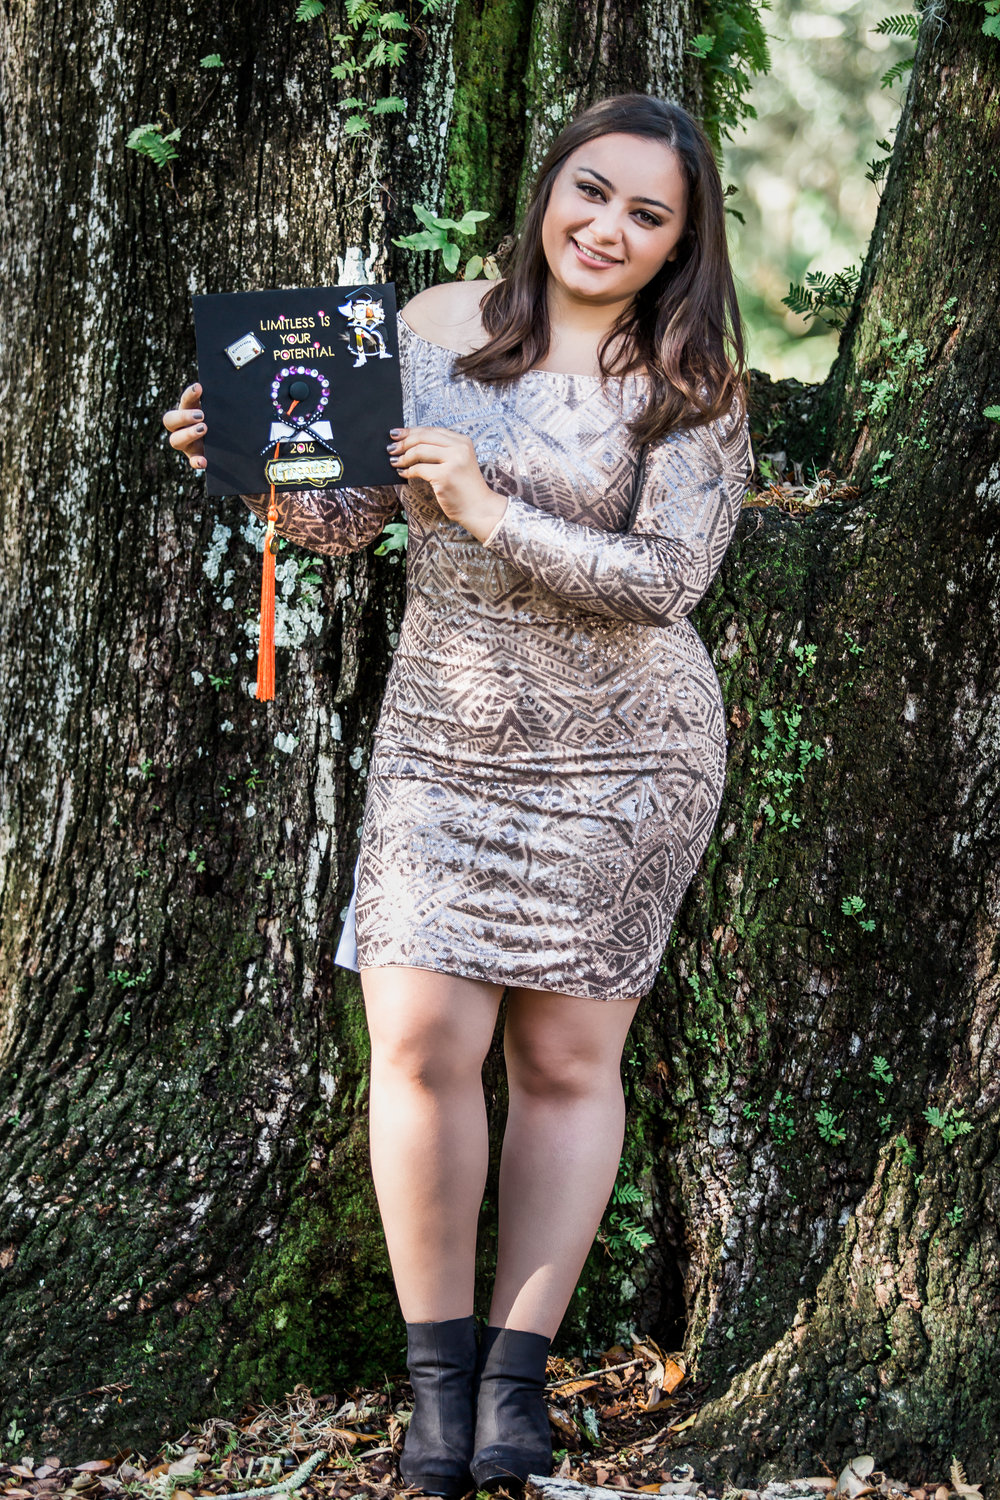 Harry Potter style fun UCF grad photos with golden glitter and a book in Langford Park, downtown Orlando, Florida